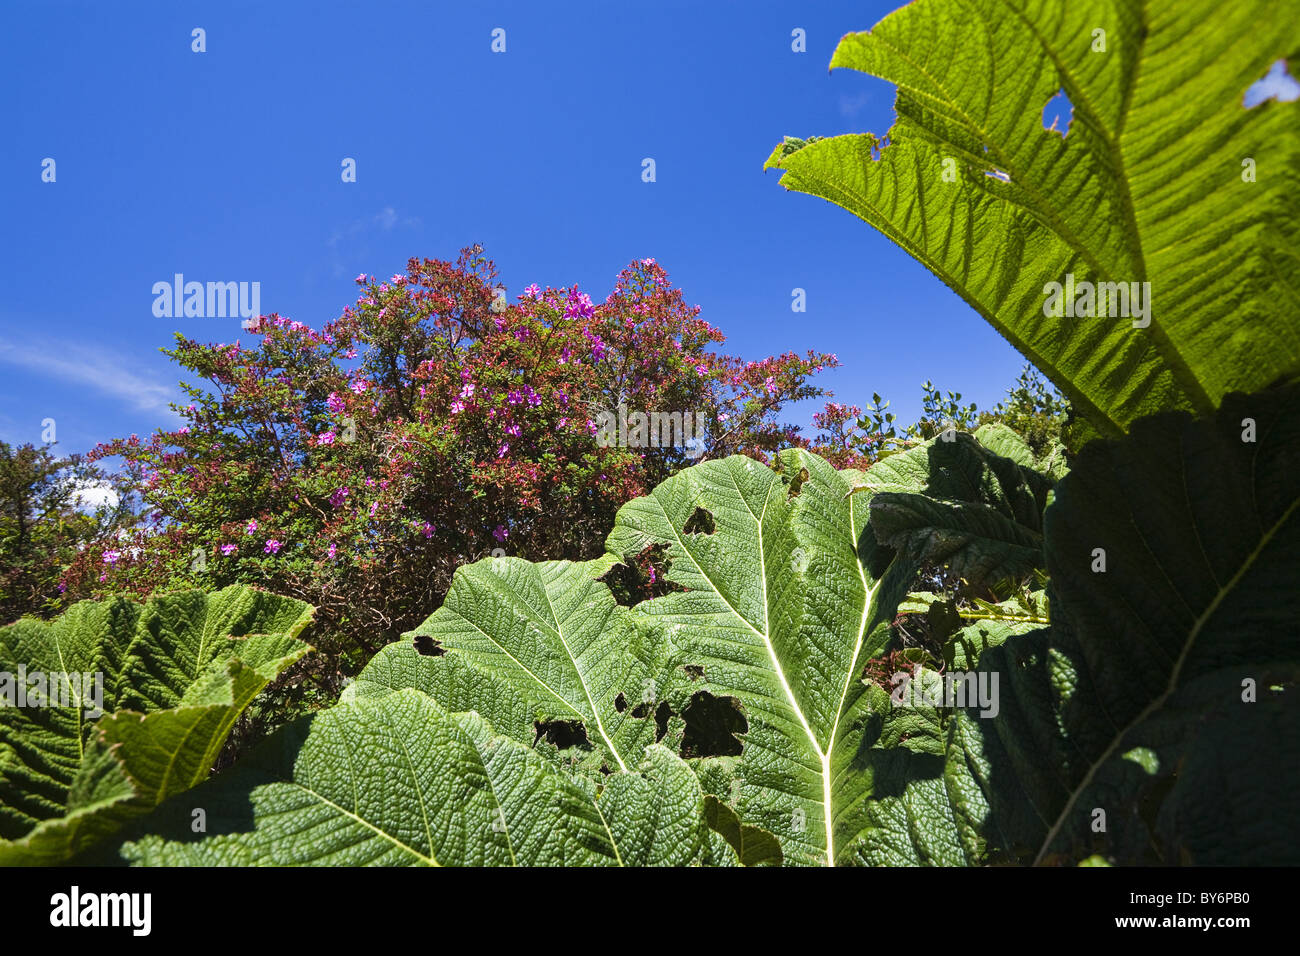 Gunnera and flowering bush in the mountainous rainforest of Volcano Poas National Park, Gunnera insignis, Costa - Stock Image